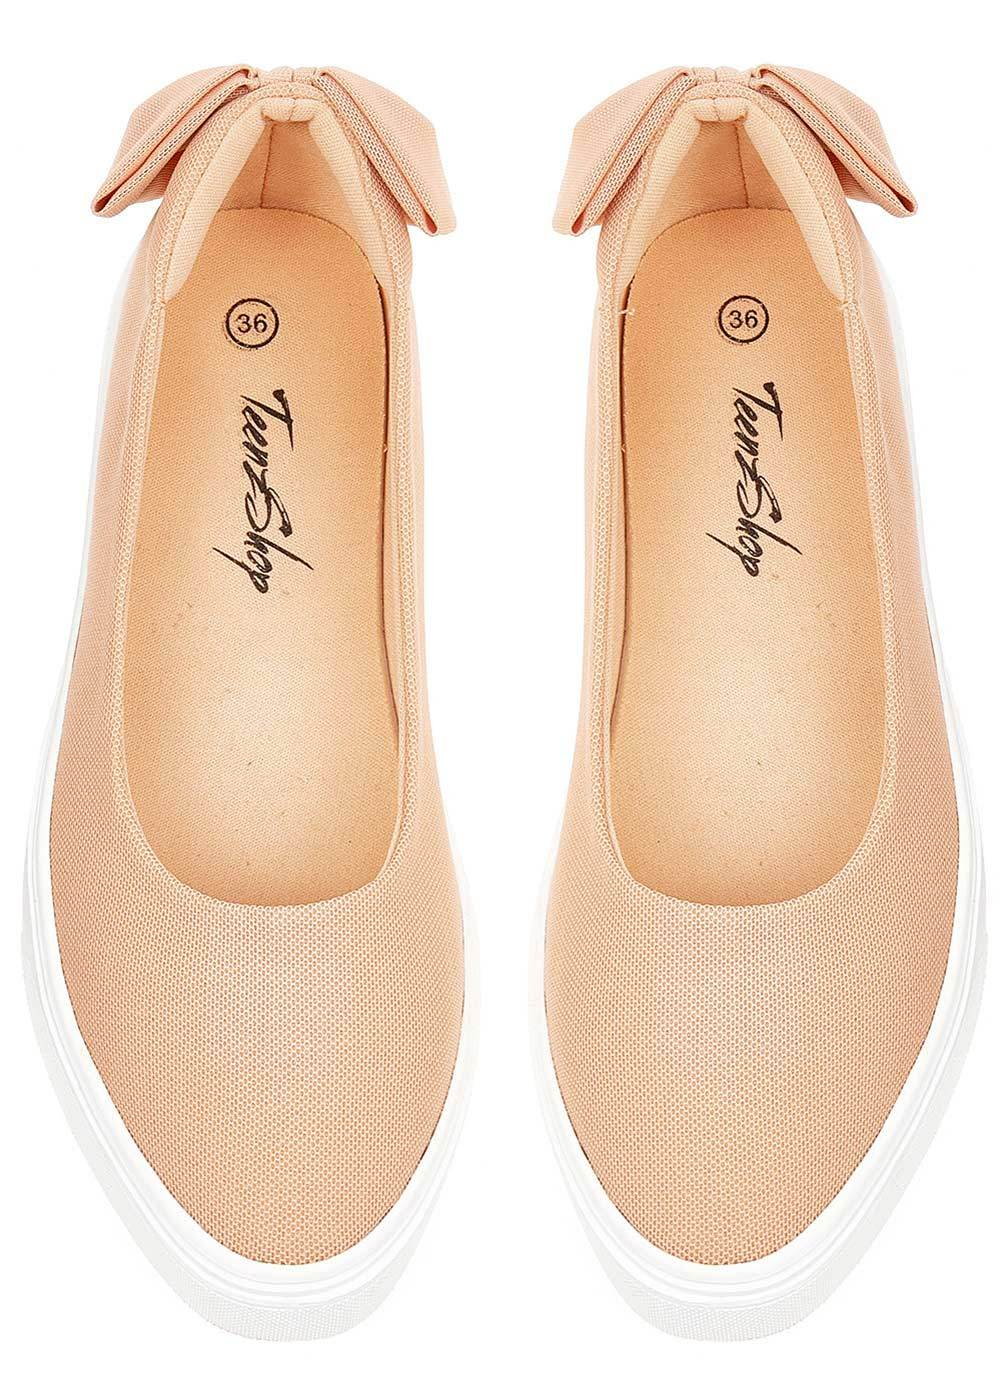 TeenzShop Nude Perfect Plimsole with Bow